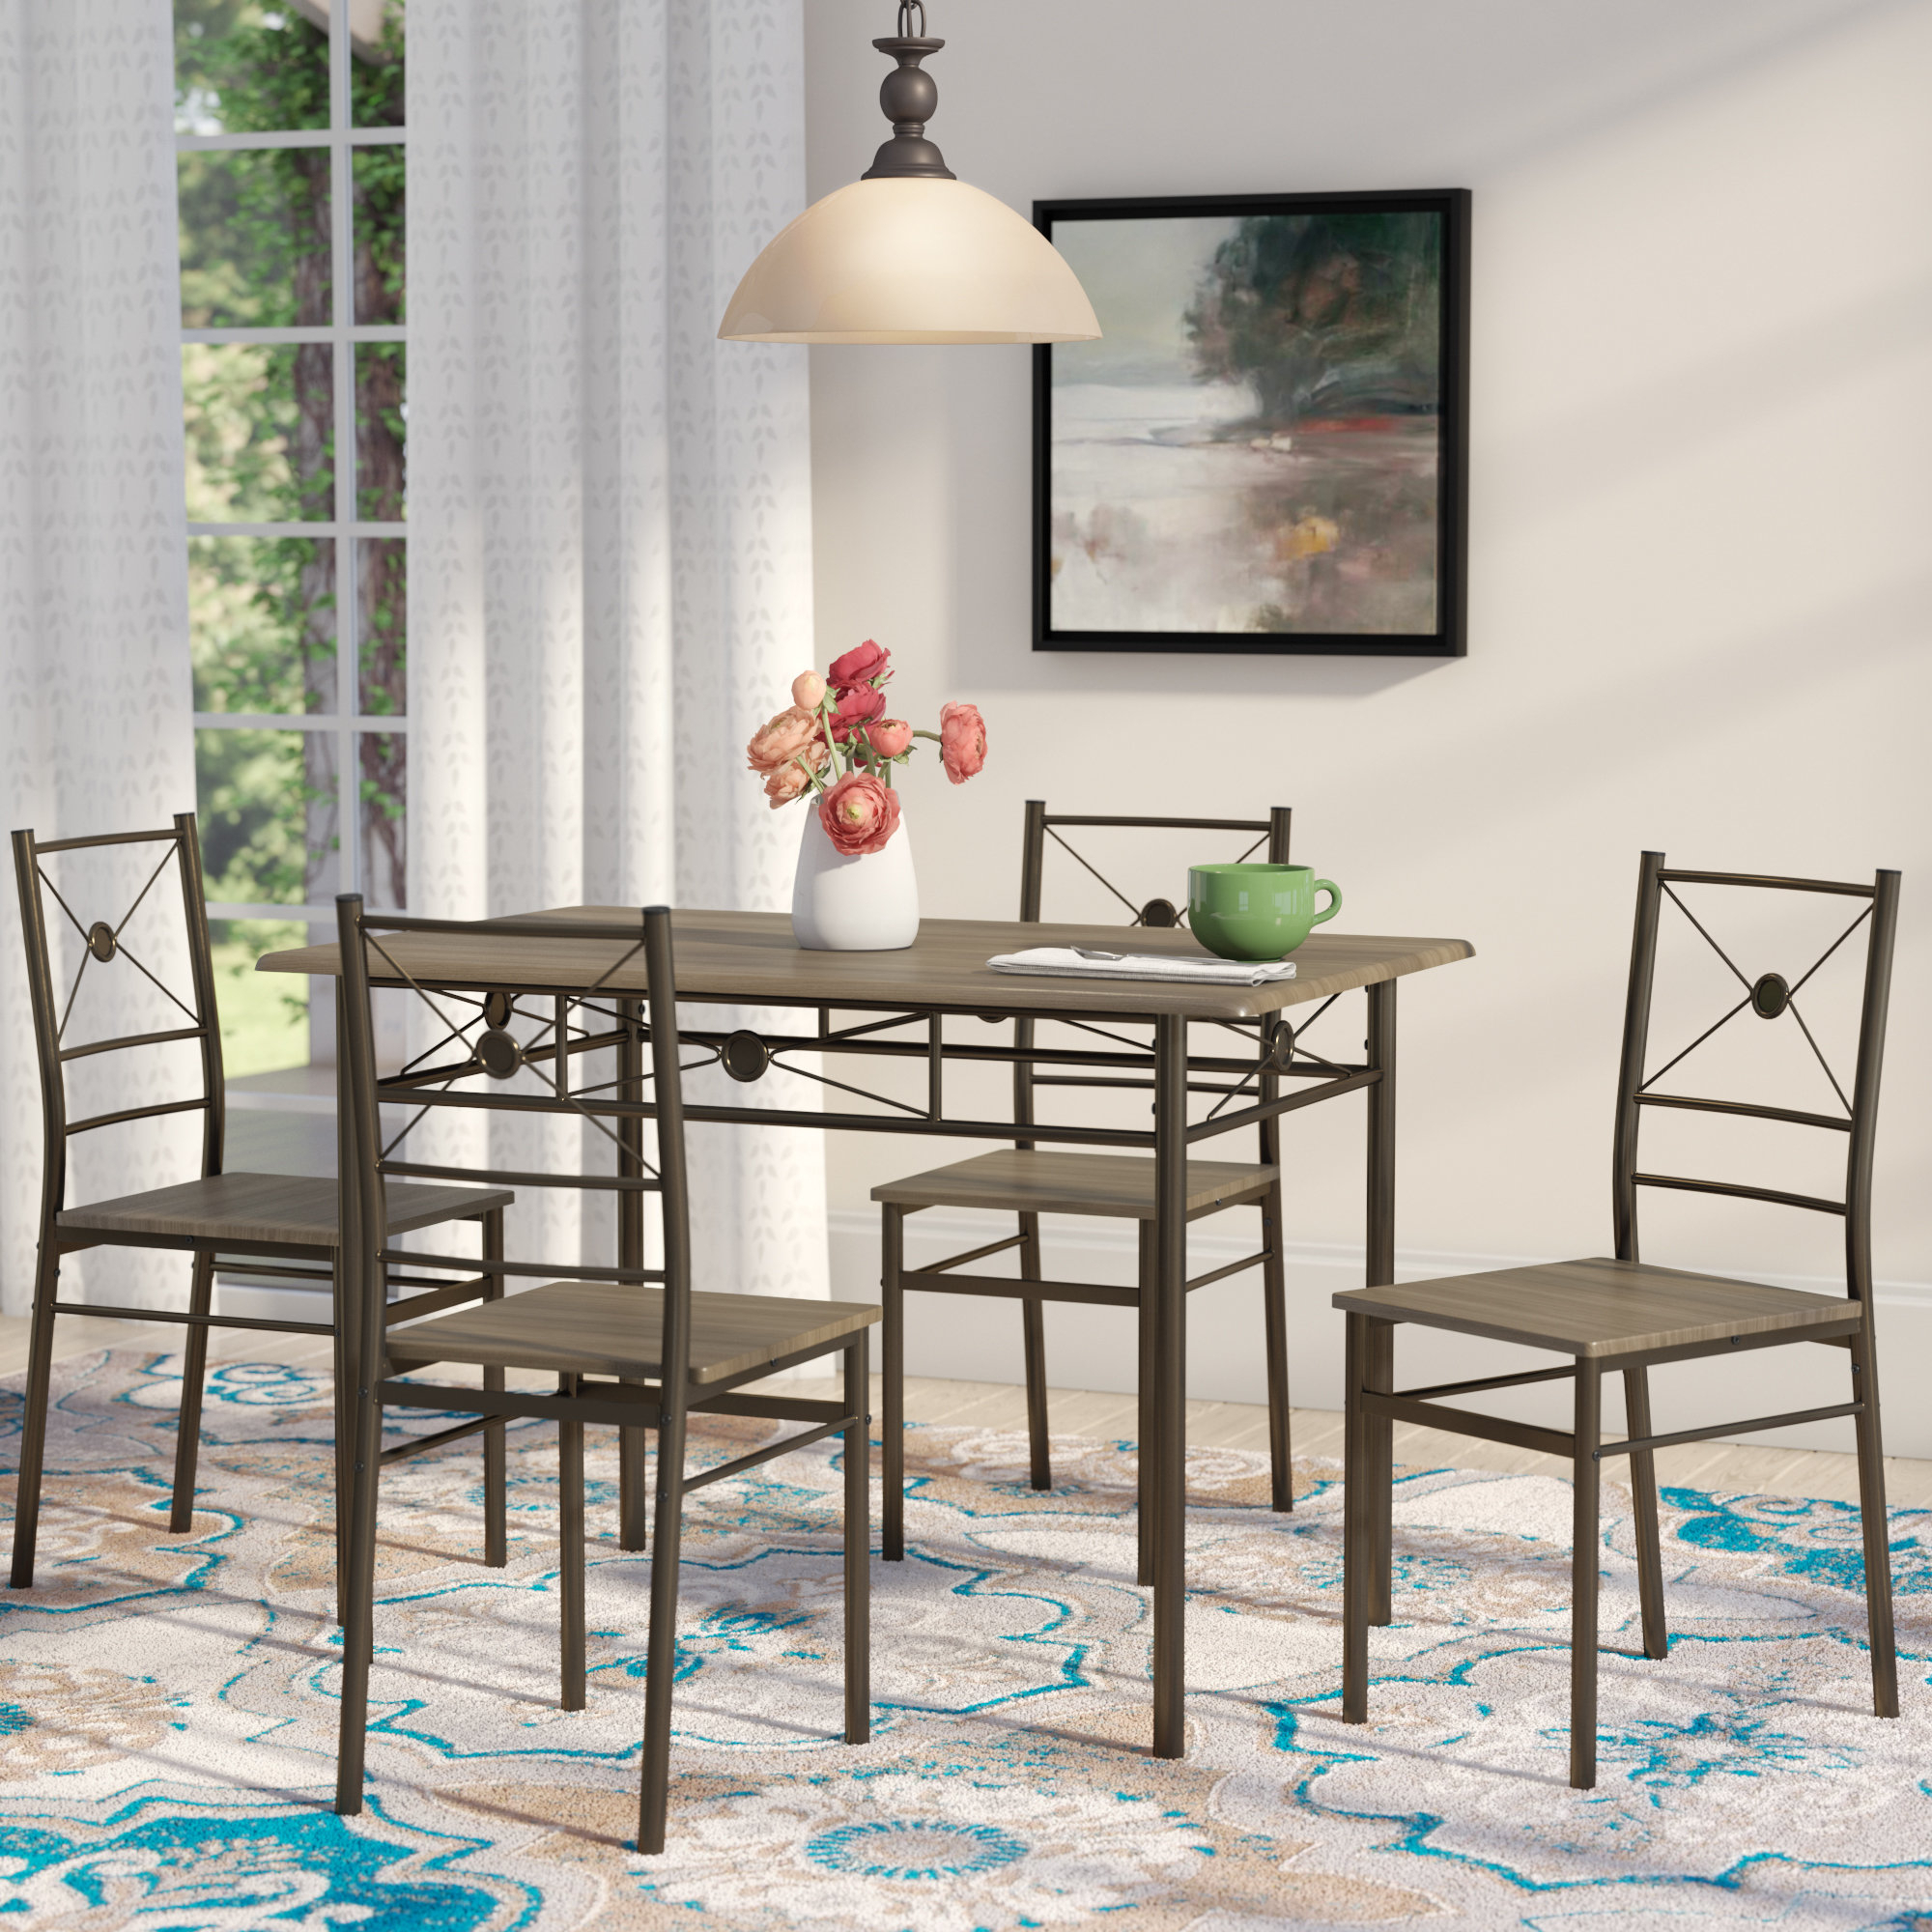 Kieffer 5 Piece Dining Set Intended For 2017 Middleport 5 Piece Dining Sets (Photo 8 of 20)